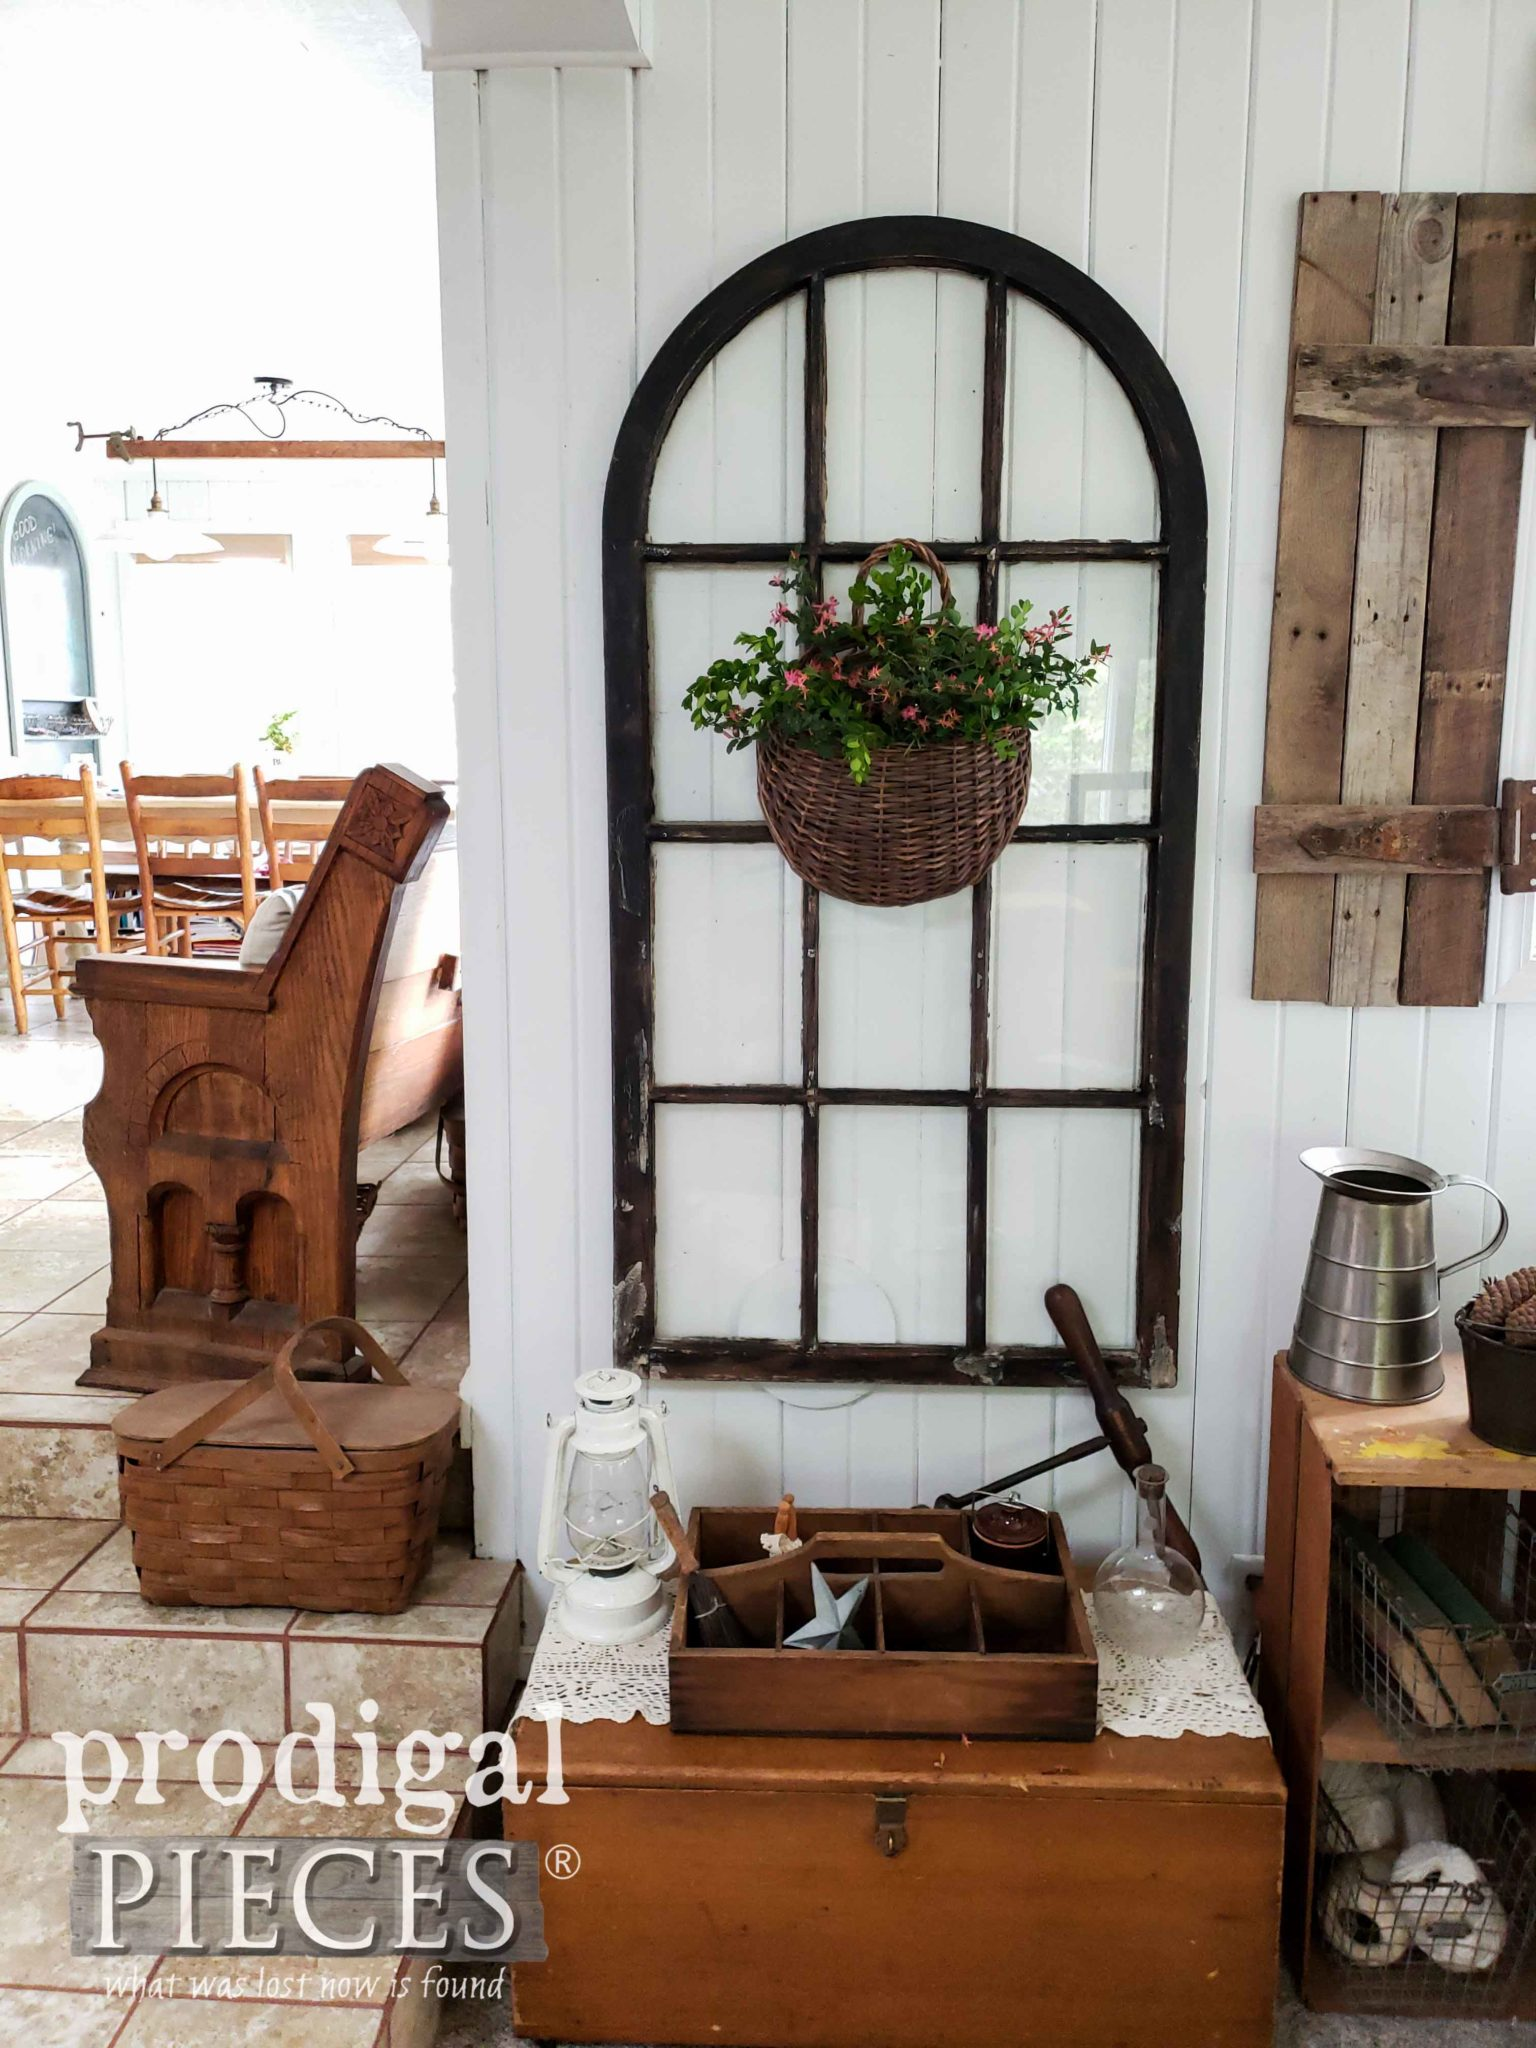 Rustic Farmhouse Living Room with Arched Window Salvage Wall Art by Larissa of Prodigal Pieces | prodigalpieces.com